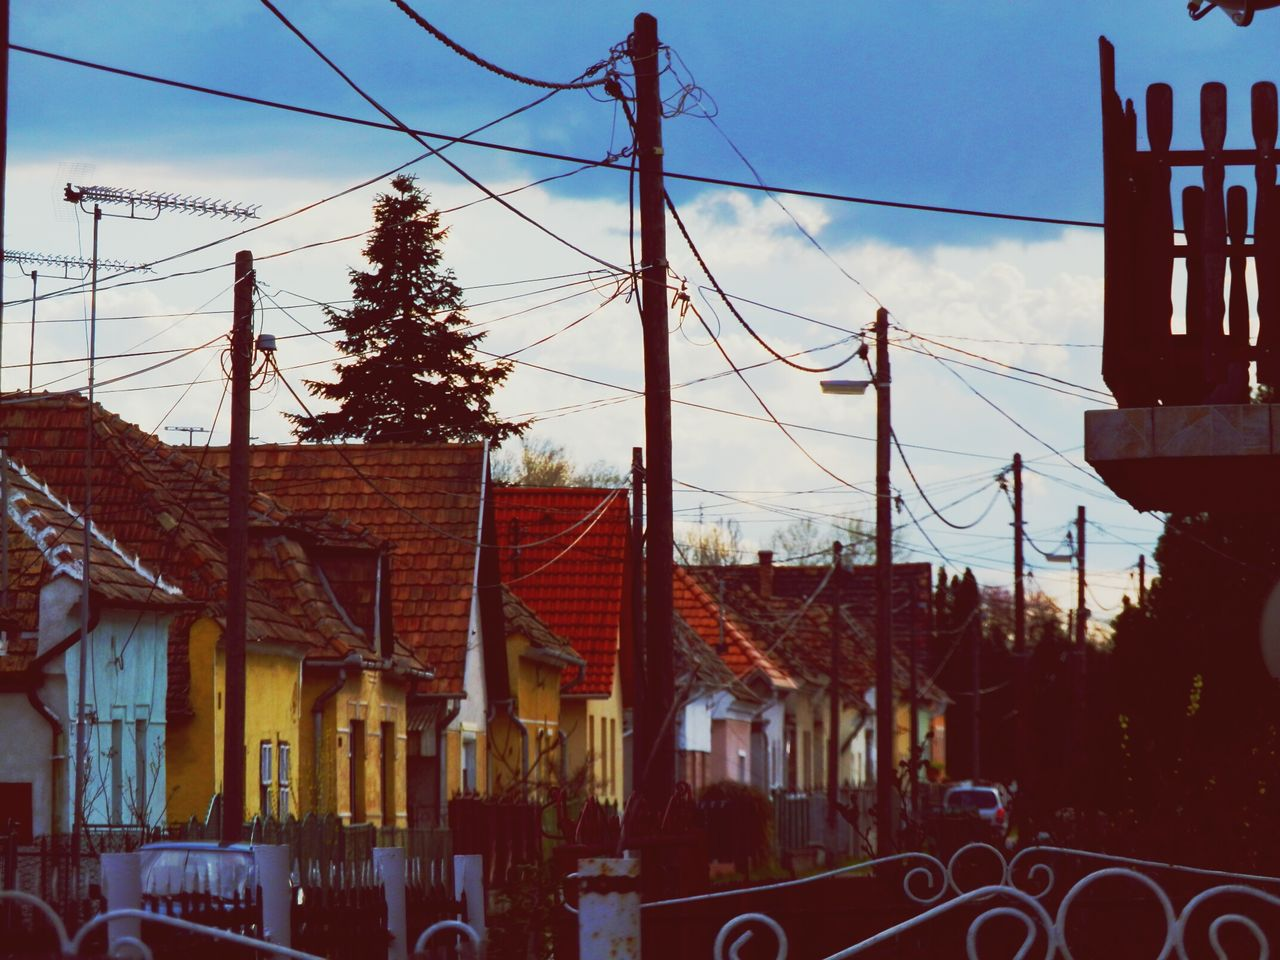 Low Angle View Of Wire And Pole By Houses Against Cloudy Sky